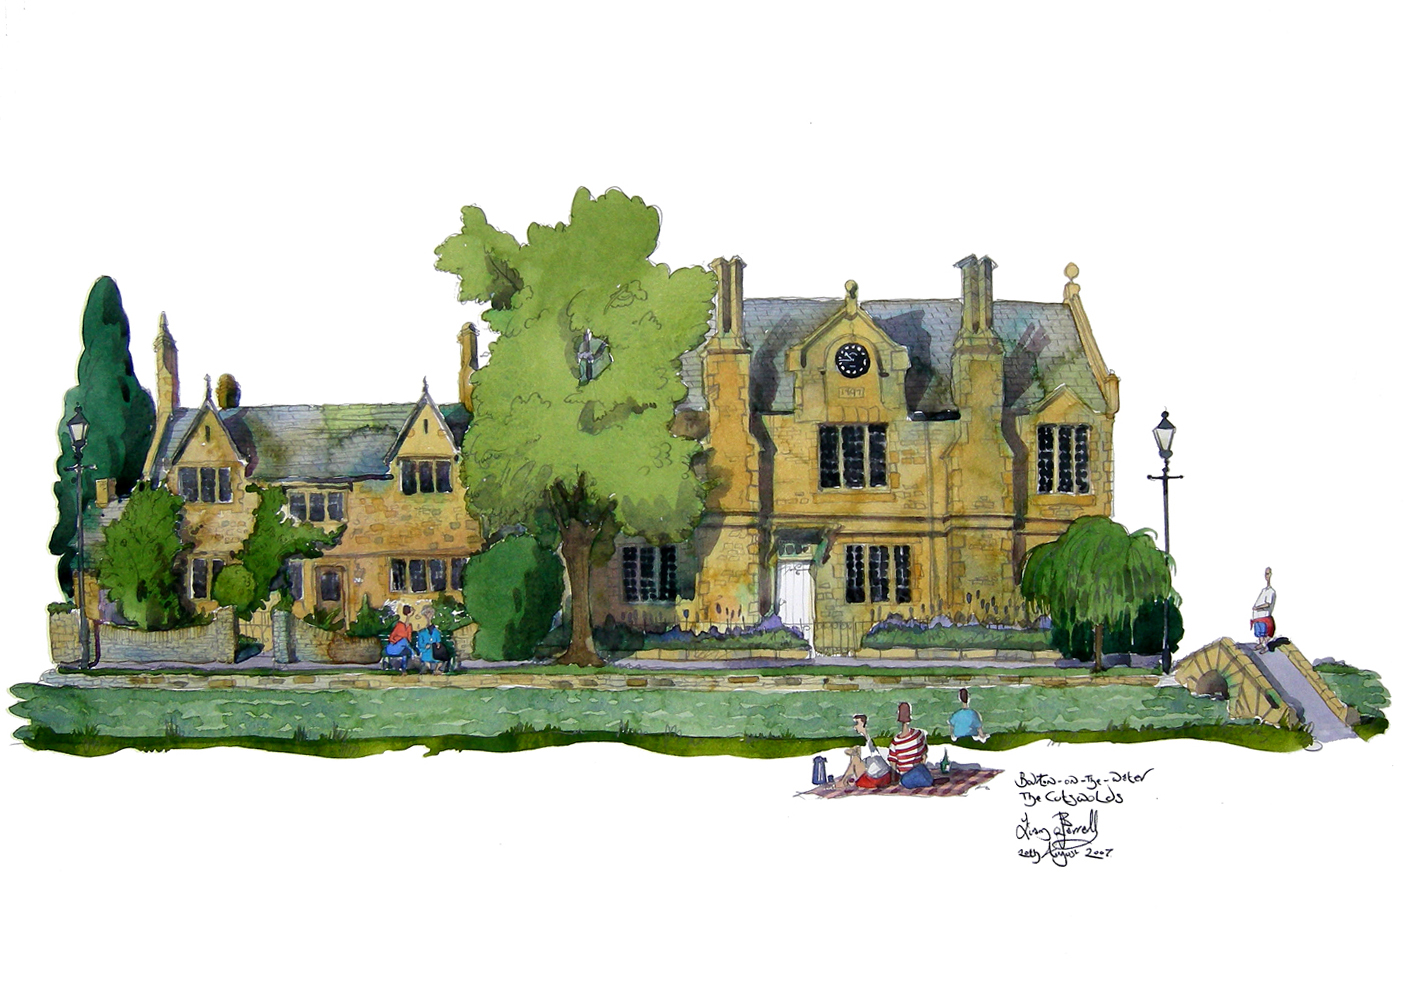 a painting of Bourton on the Water